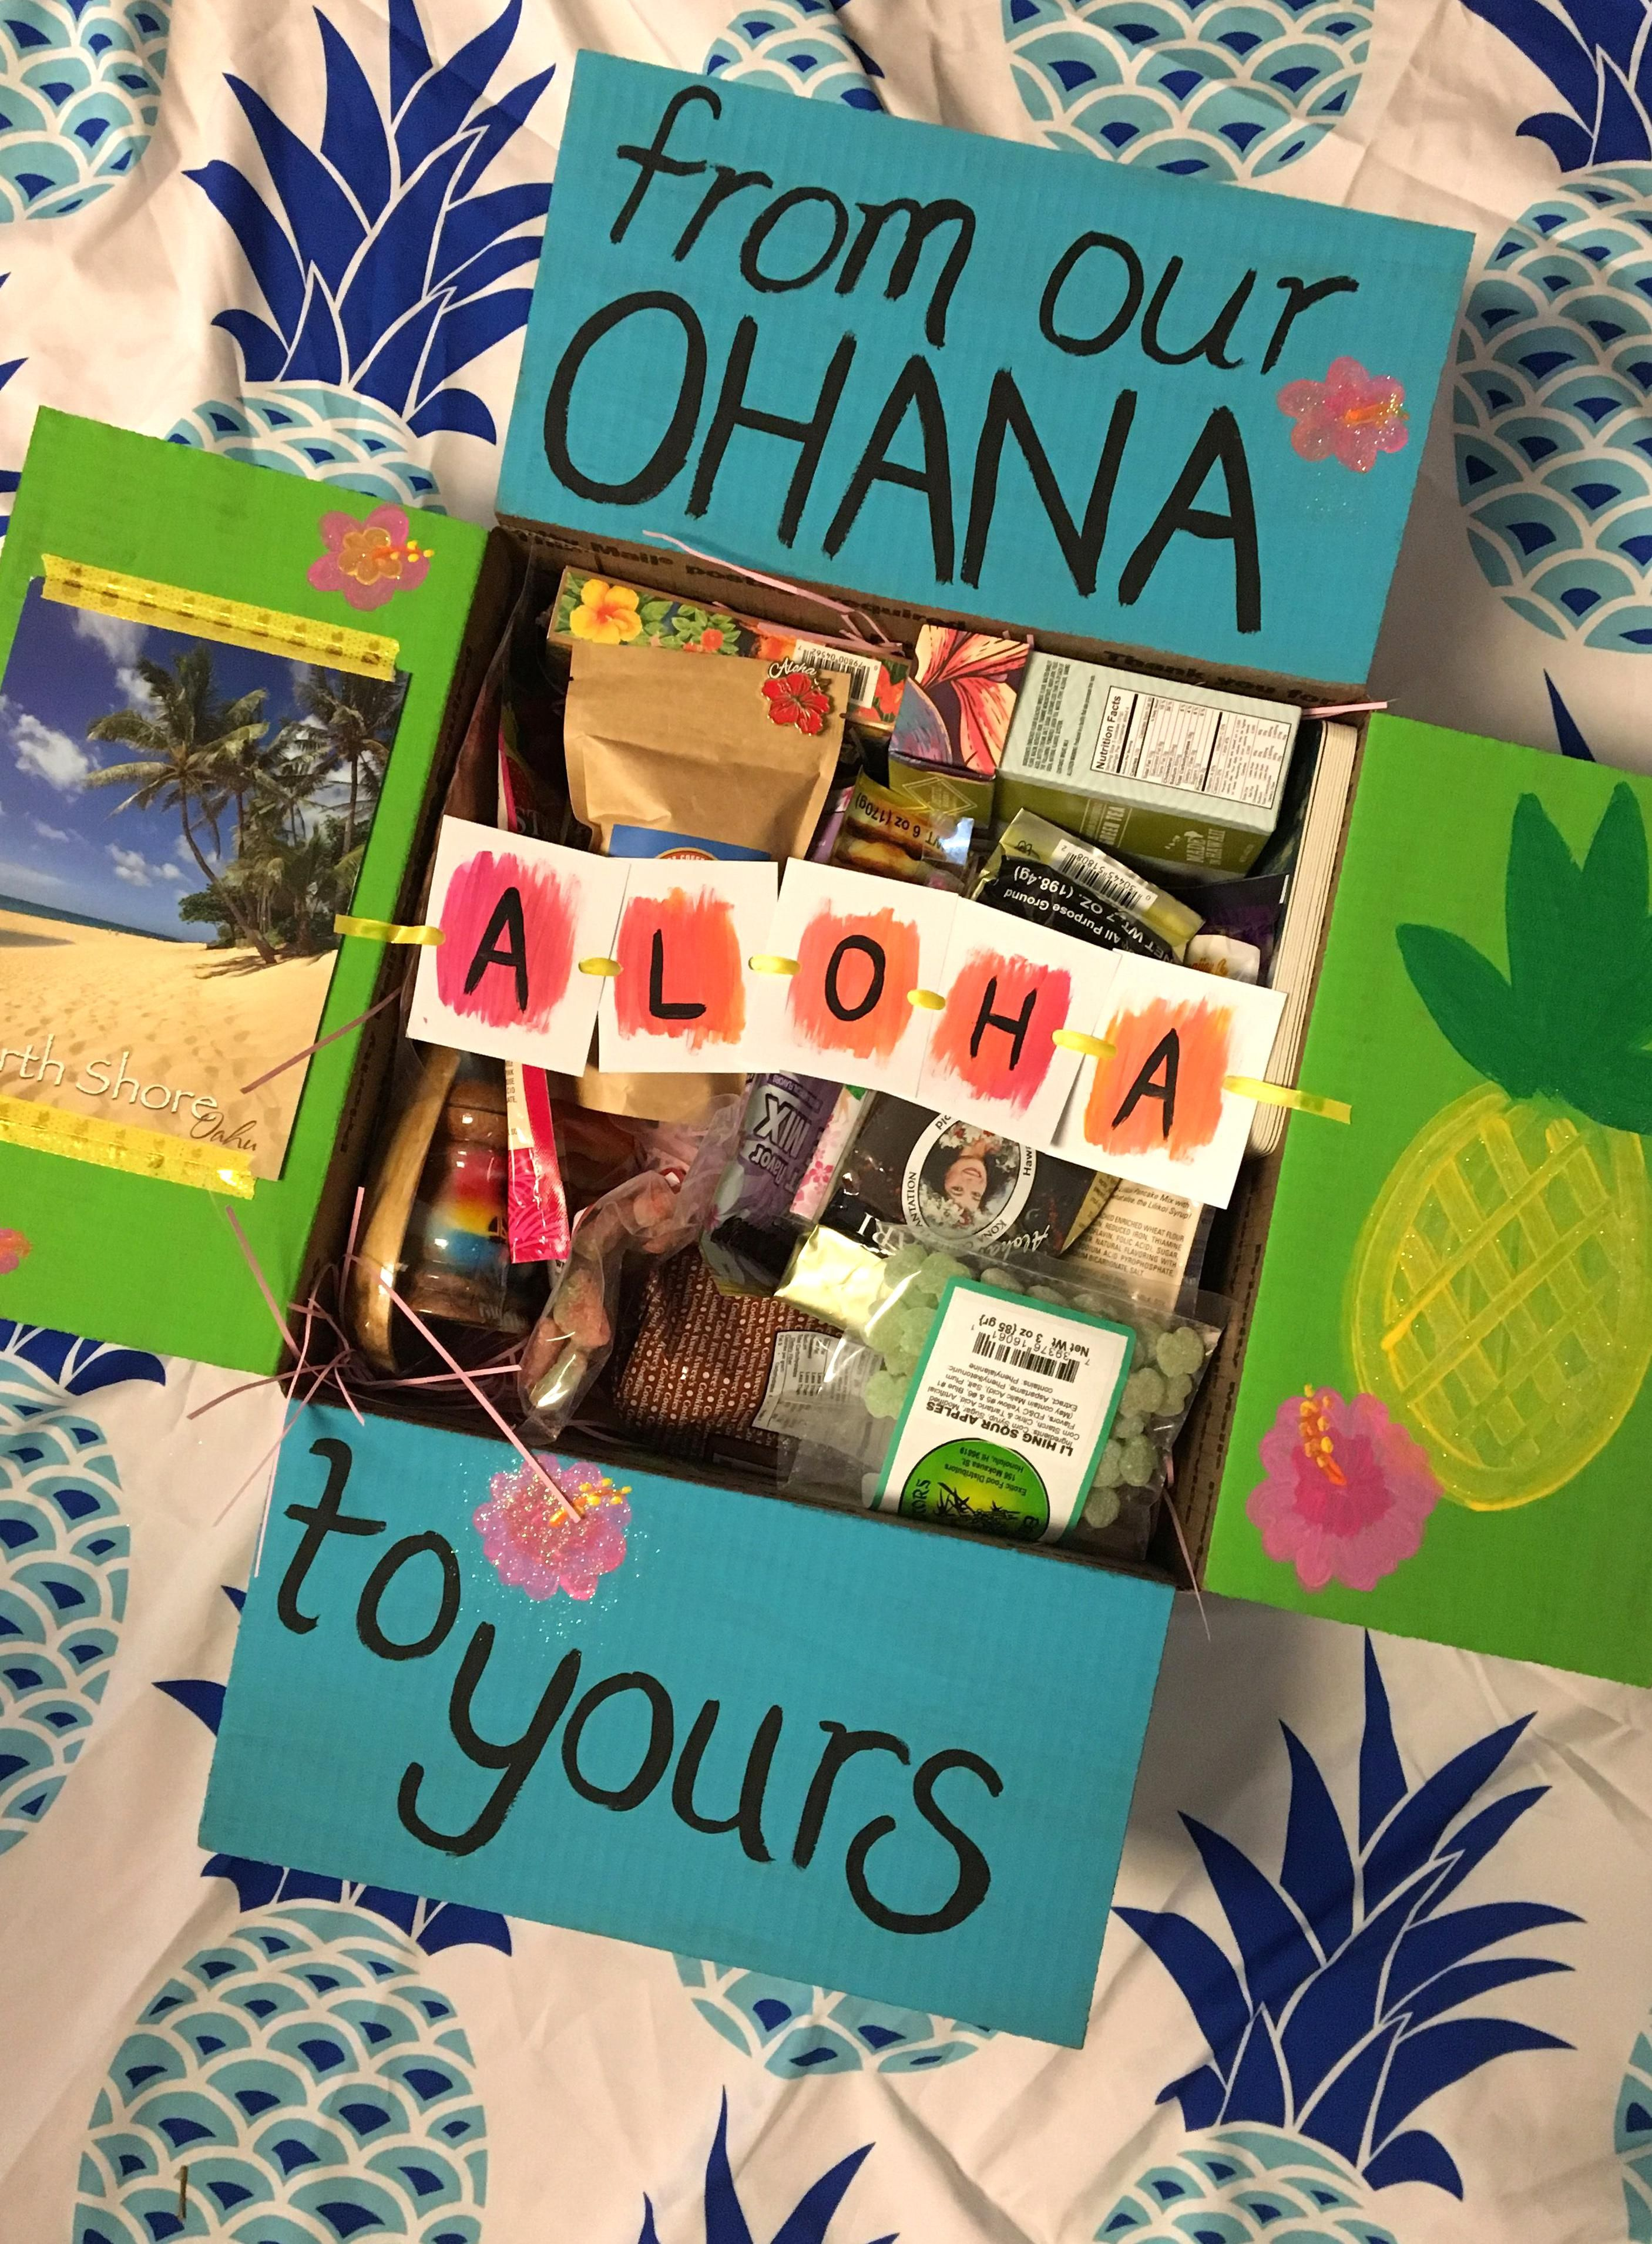 Hawaii care package in 2020 | Diy best friend gifts, Christmas